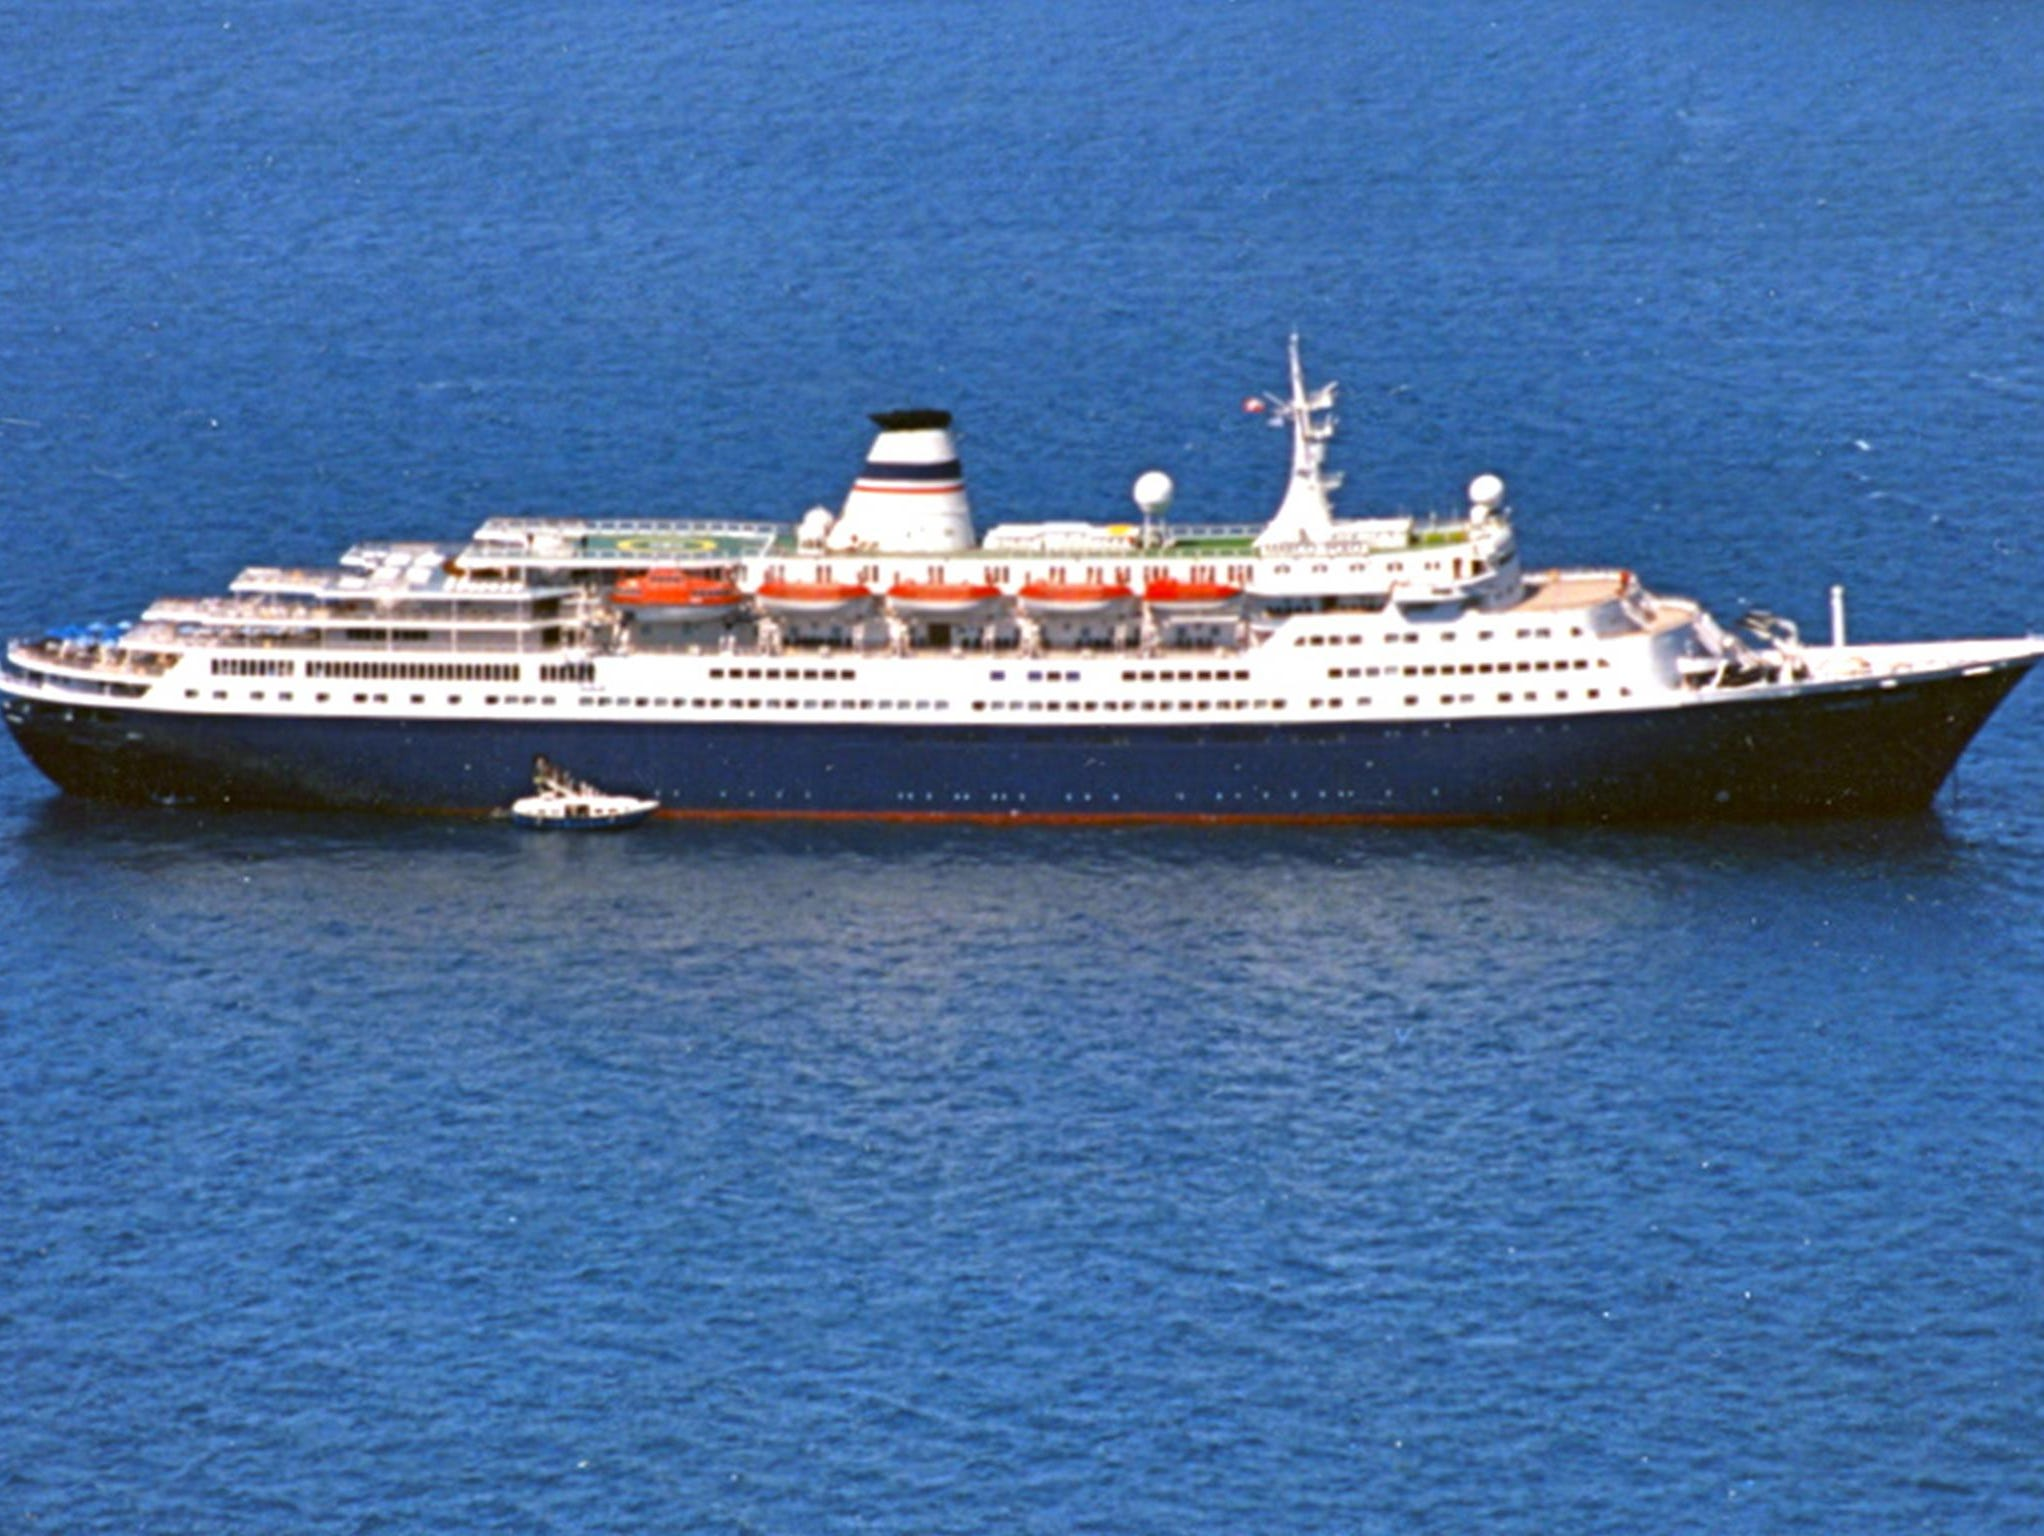 Marco Polo earned a loyal following sailing throughout the world for Orient Lines in expedition-style cruise service. In 1998, Orient Lines was sold to NCL and ultimately shut down in 2008. Marco Polo was sold to Story Cruise, Ltd. of Greece and subsequently chartered to German-based Transocean Tours in 2008.